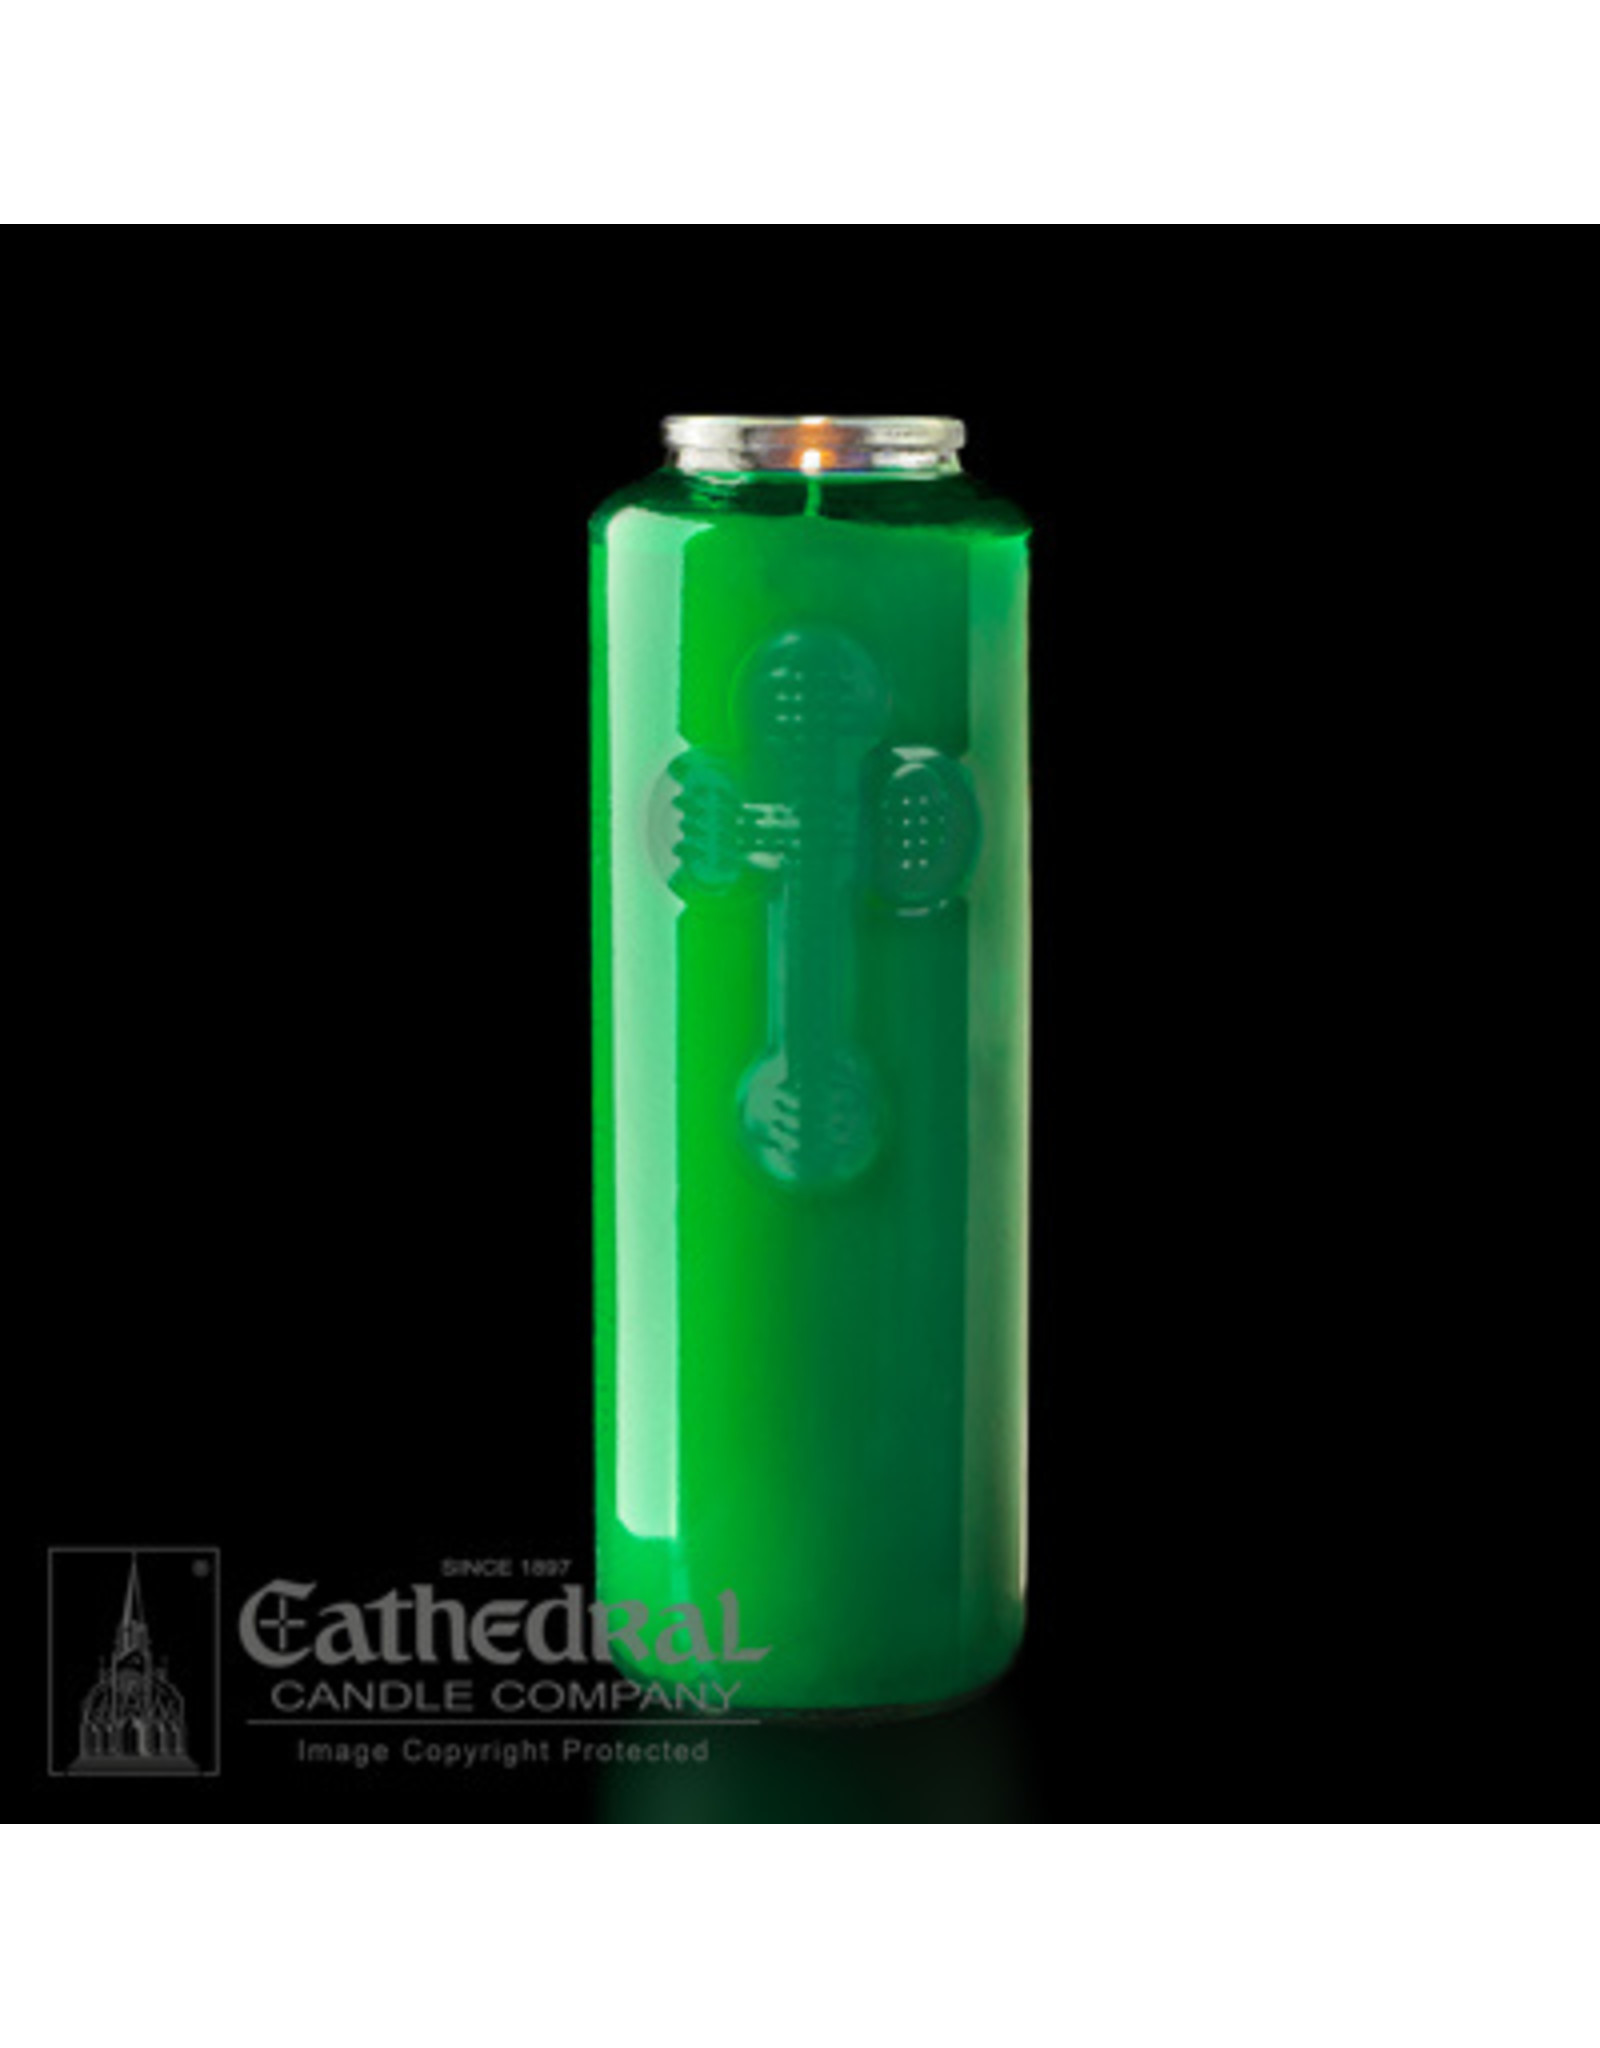 6-Day Green Glass Candle